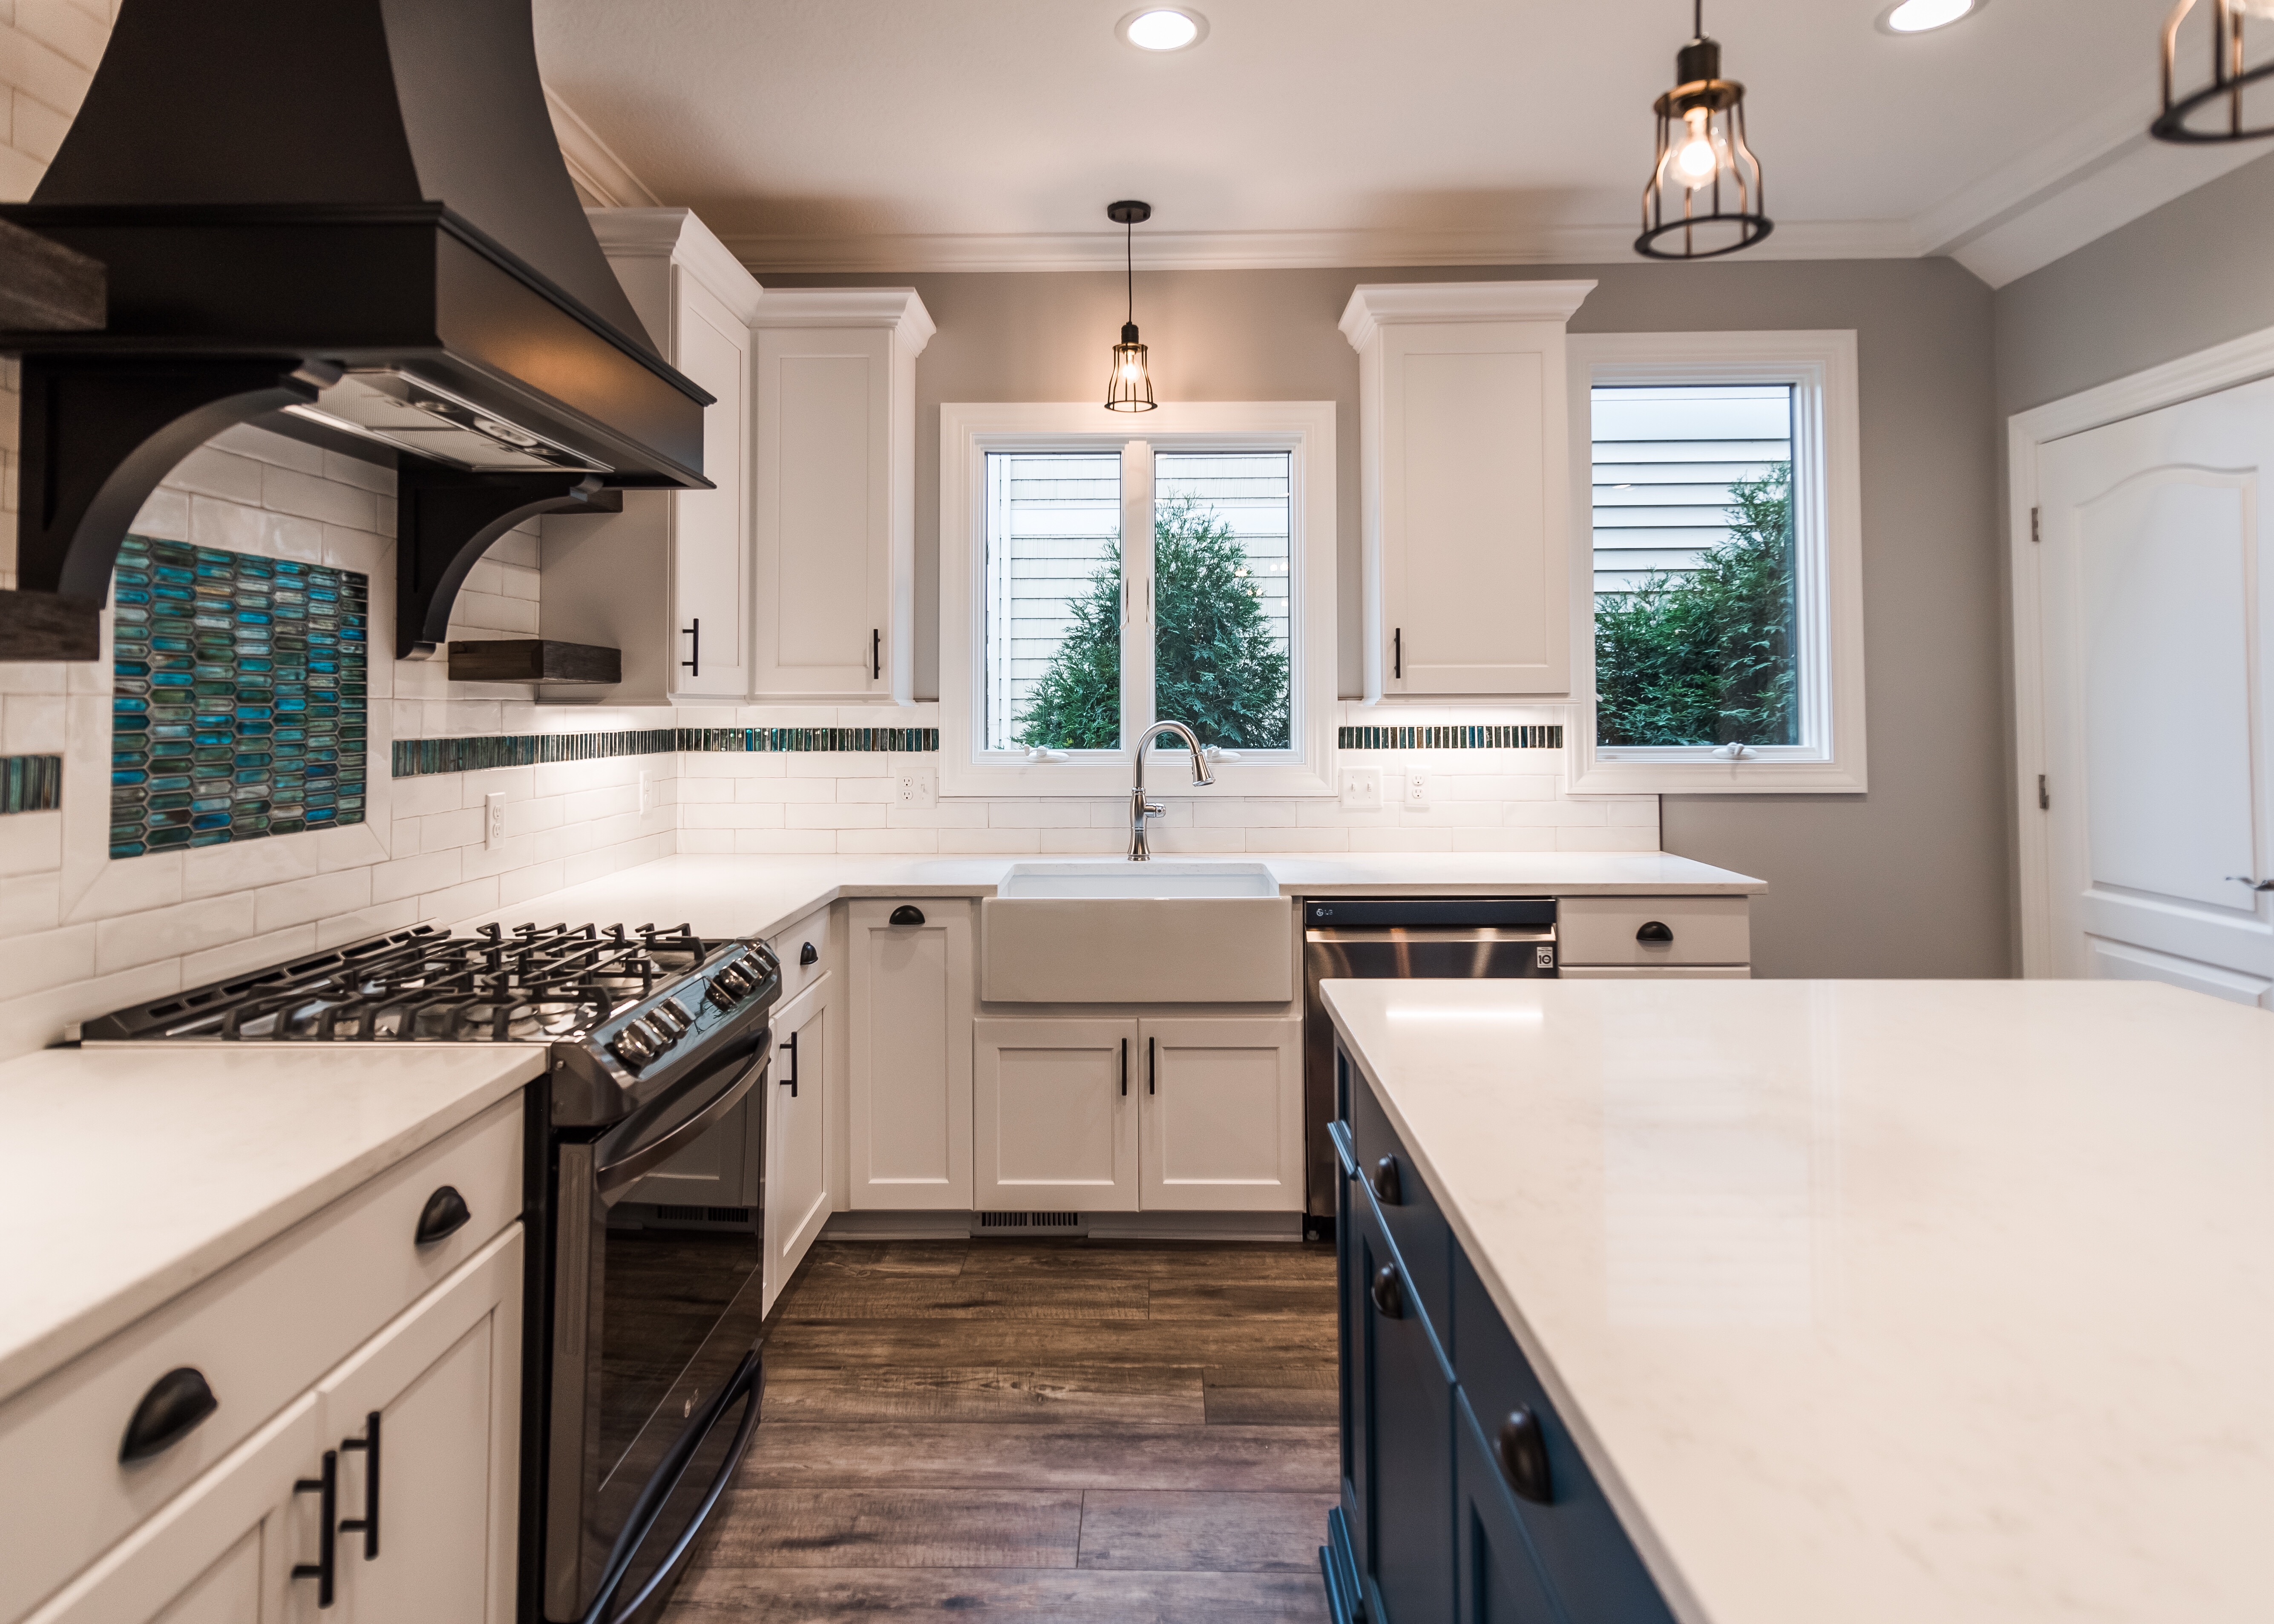 Kitchen Constructions projects and renovations